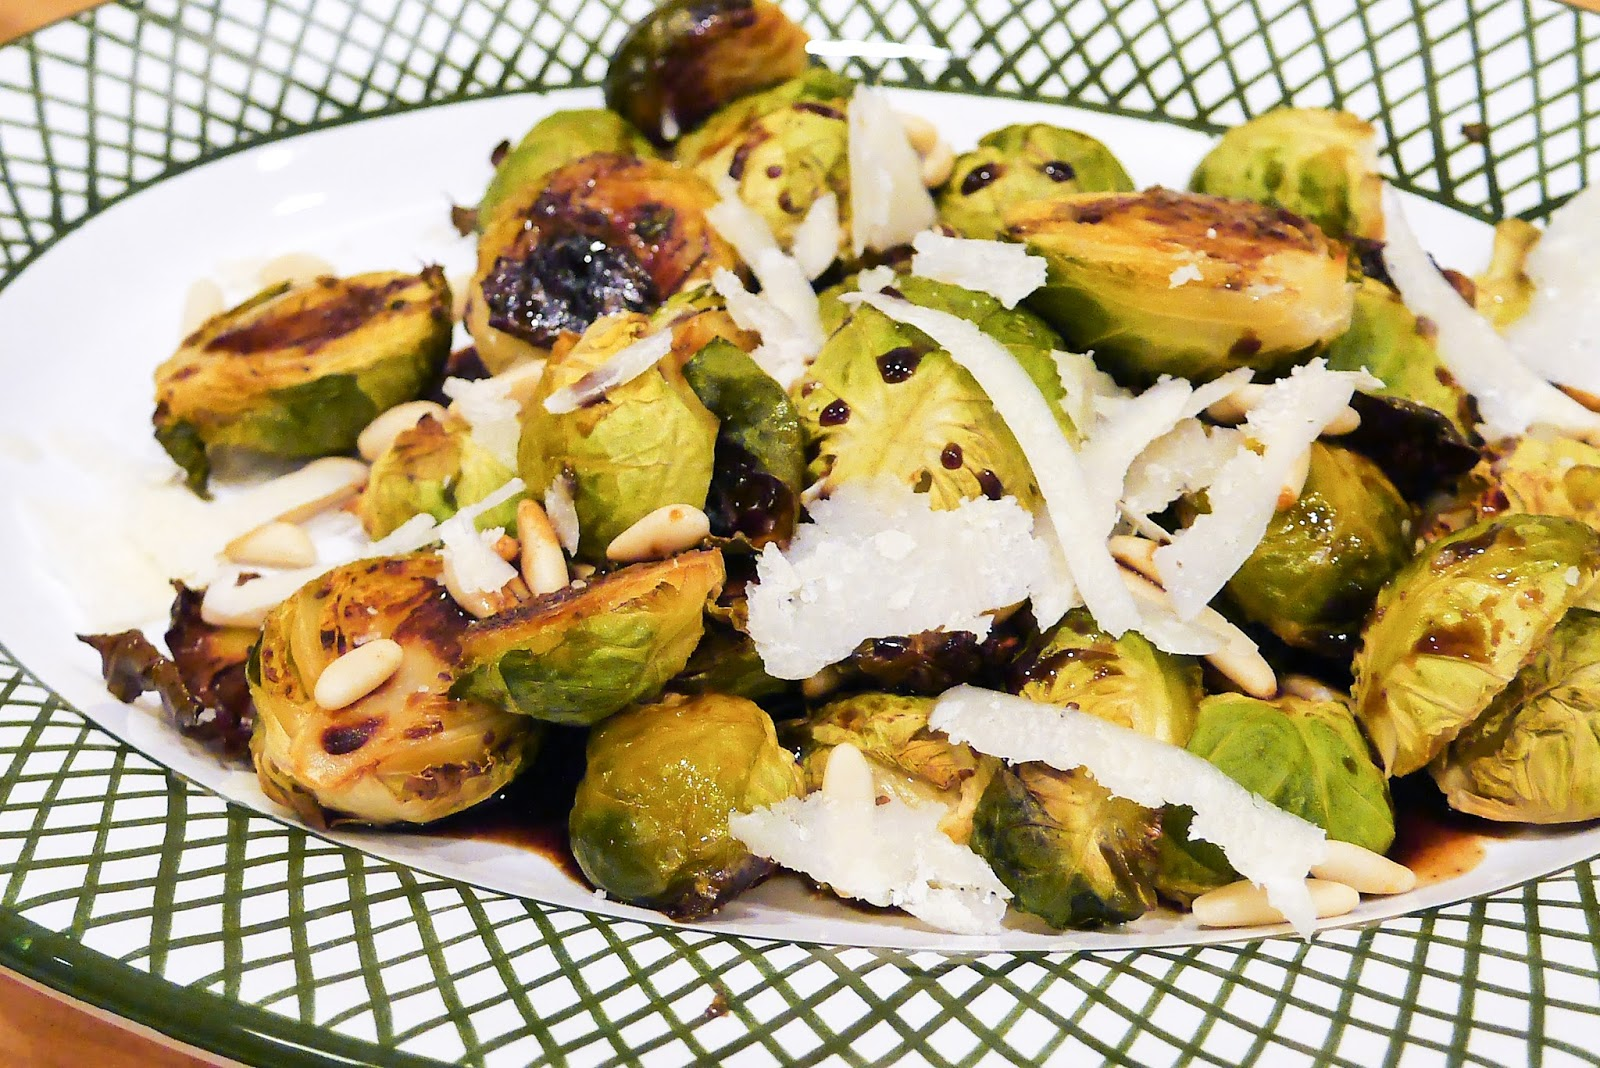 ... Brussels Sprouts with Balsamic Vinegar, Pine Nuts and Parmesan by Tom